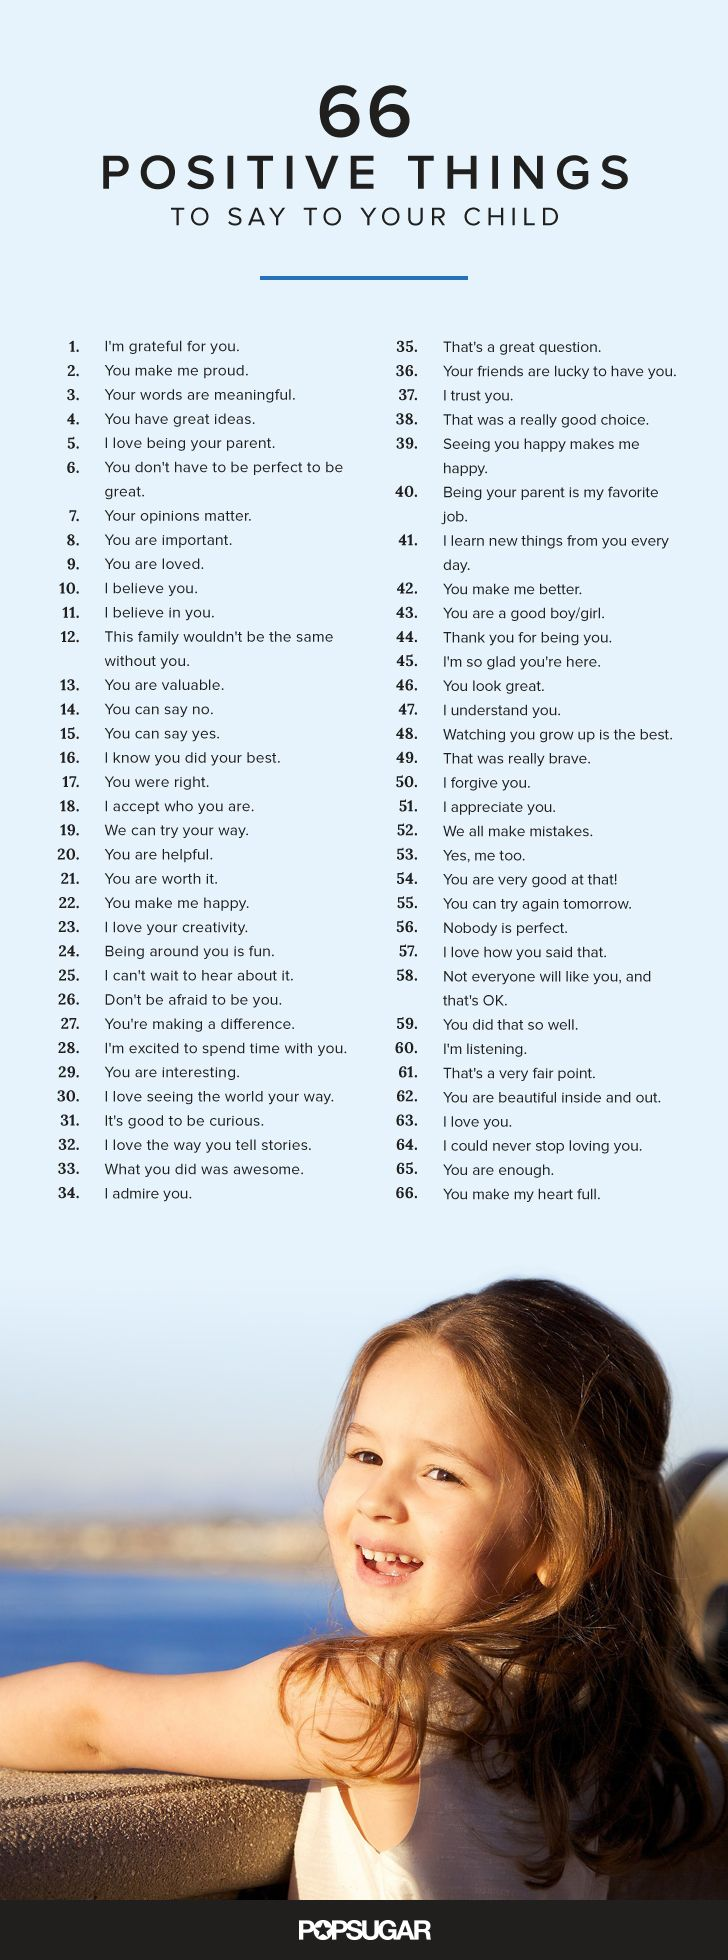 //Whether you want to tell them how great they were at their soccer game, or how much you love spending time with them, here are 66 positive and encouraging things to say to your child on a daily basis. #kids